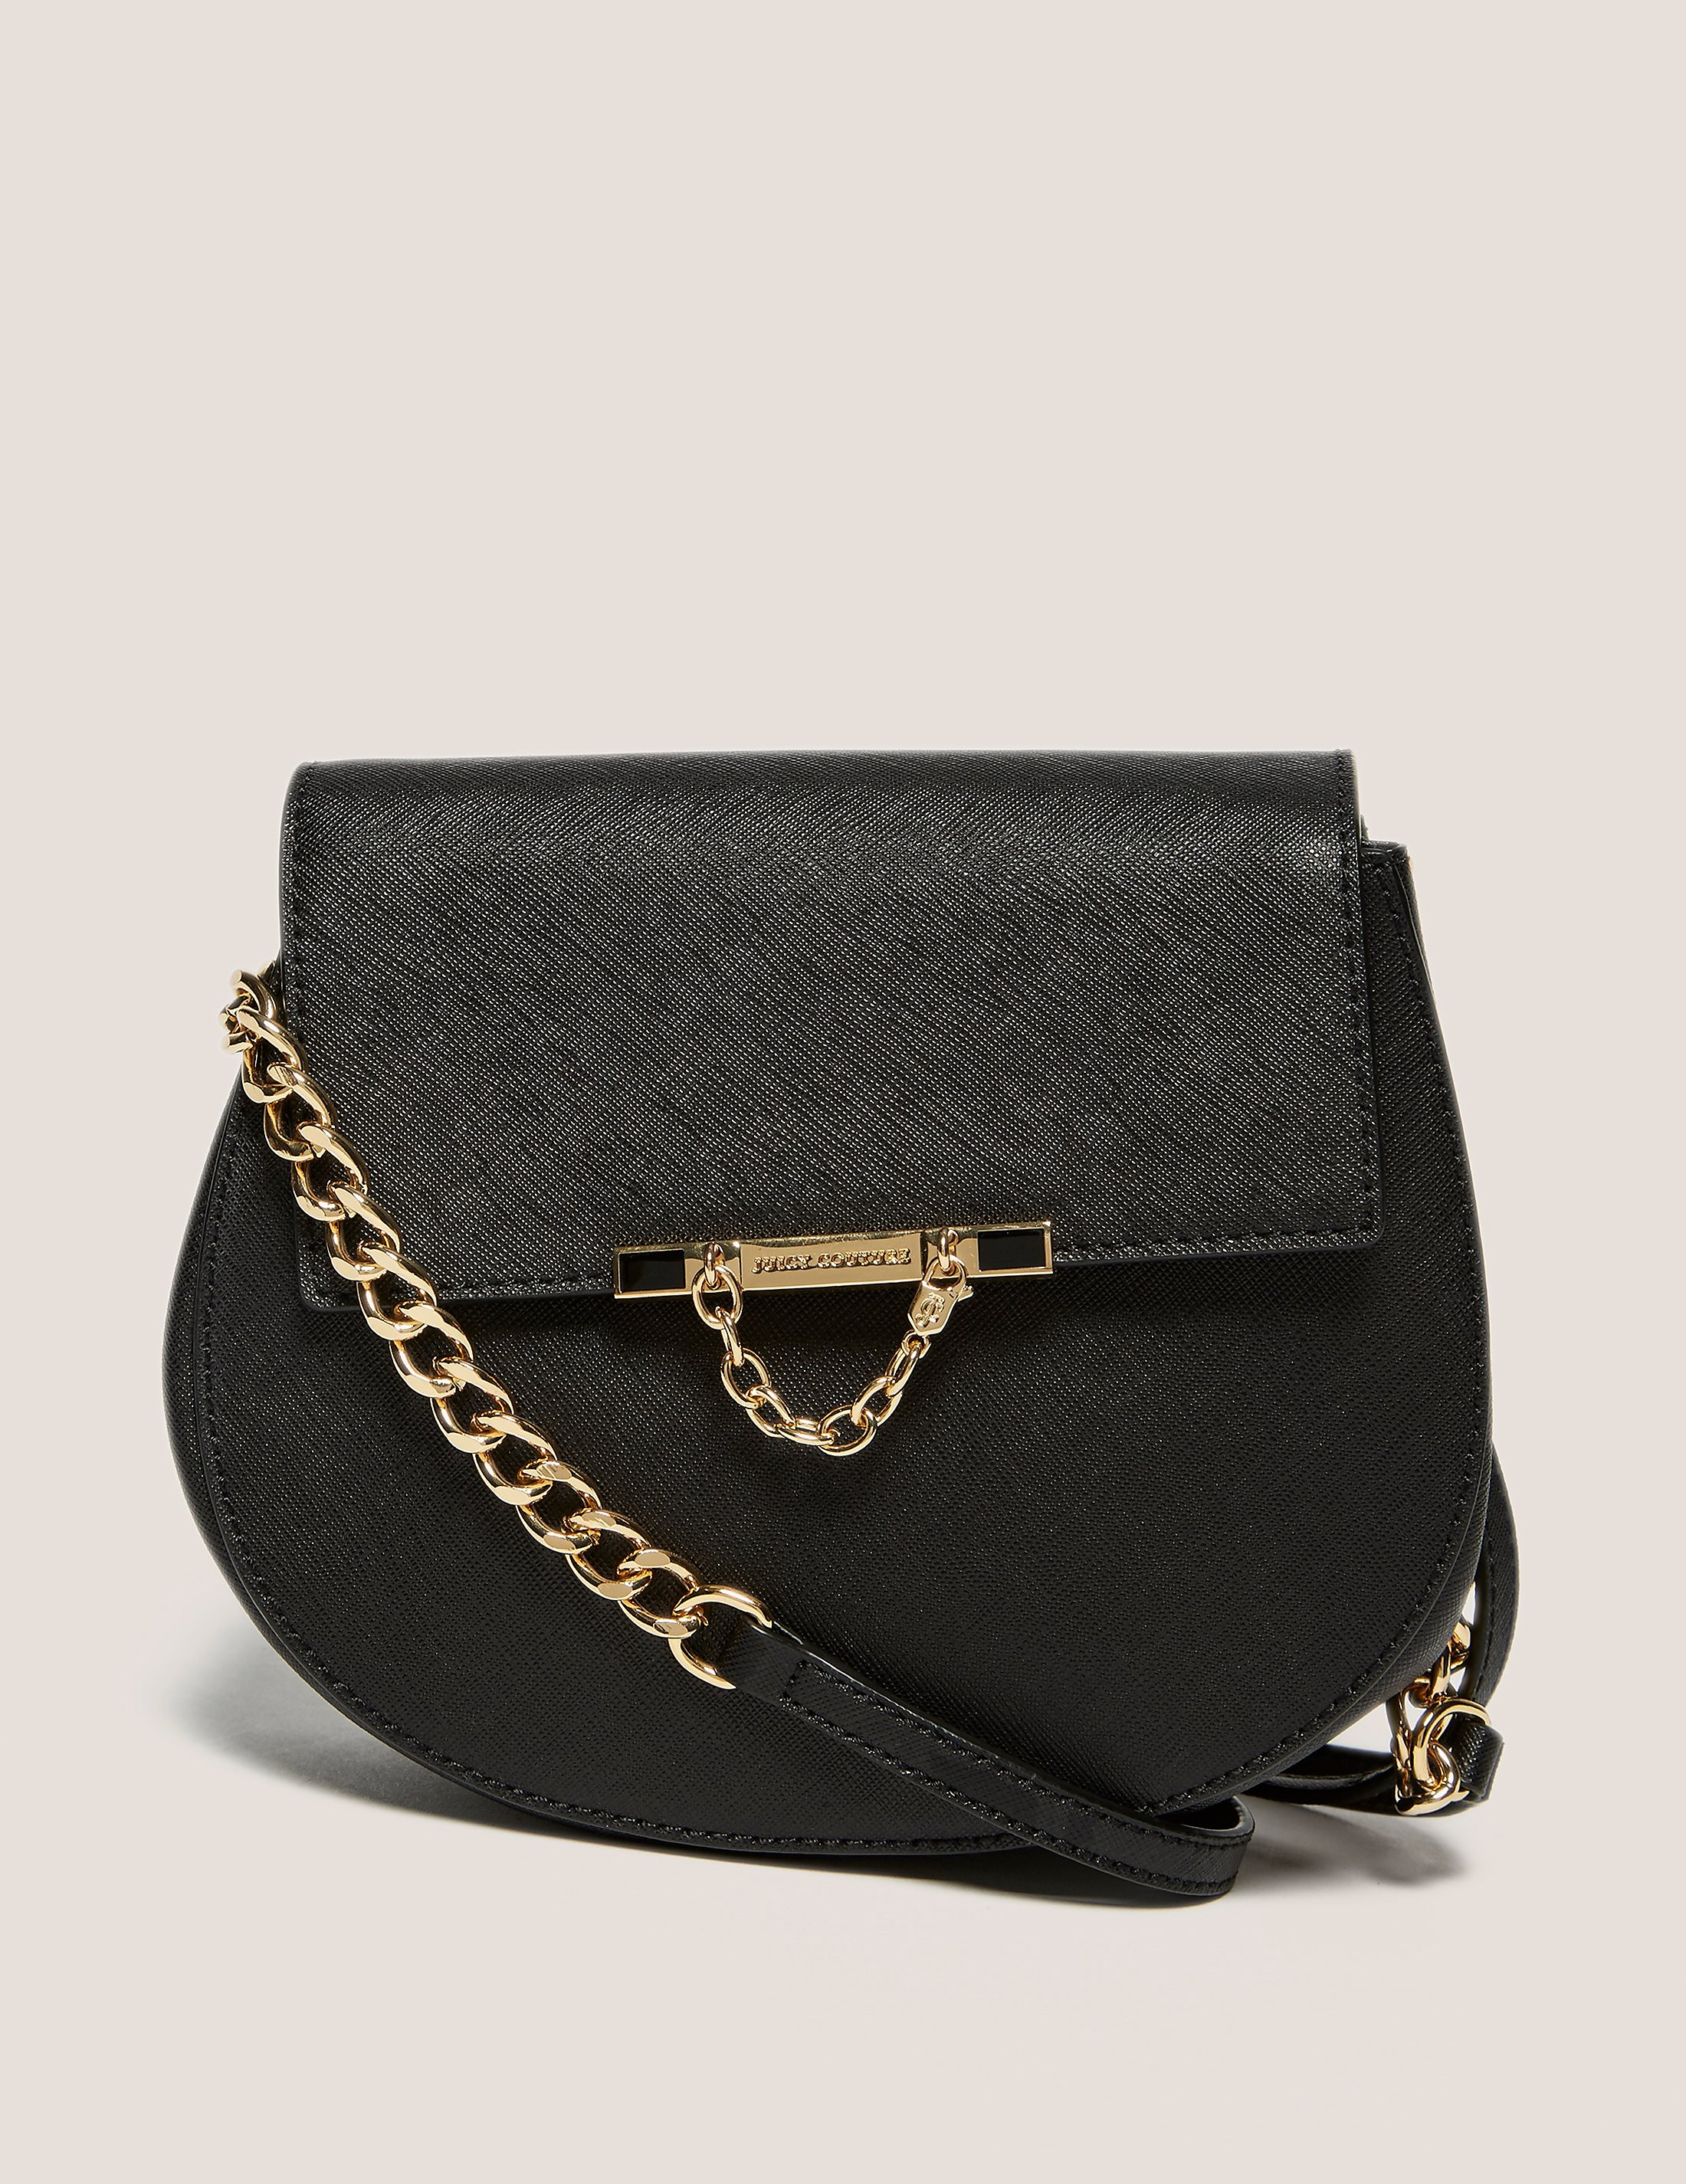 Juicy Couture Mini J Bag